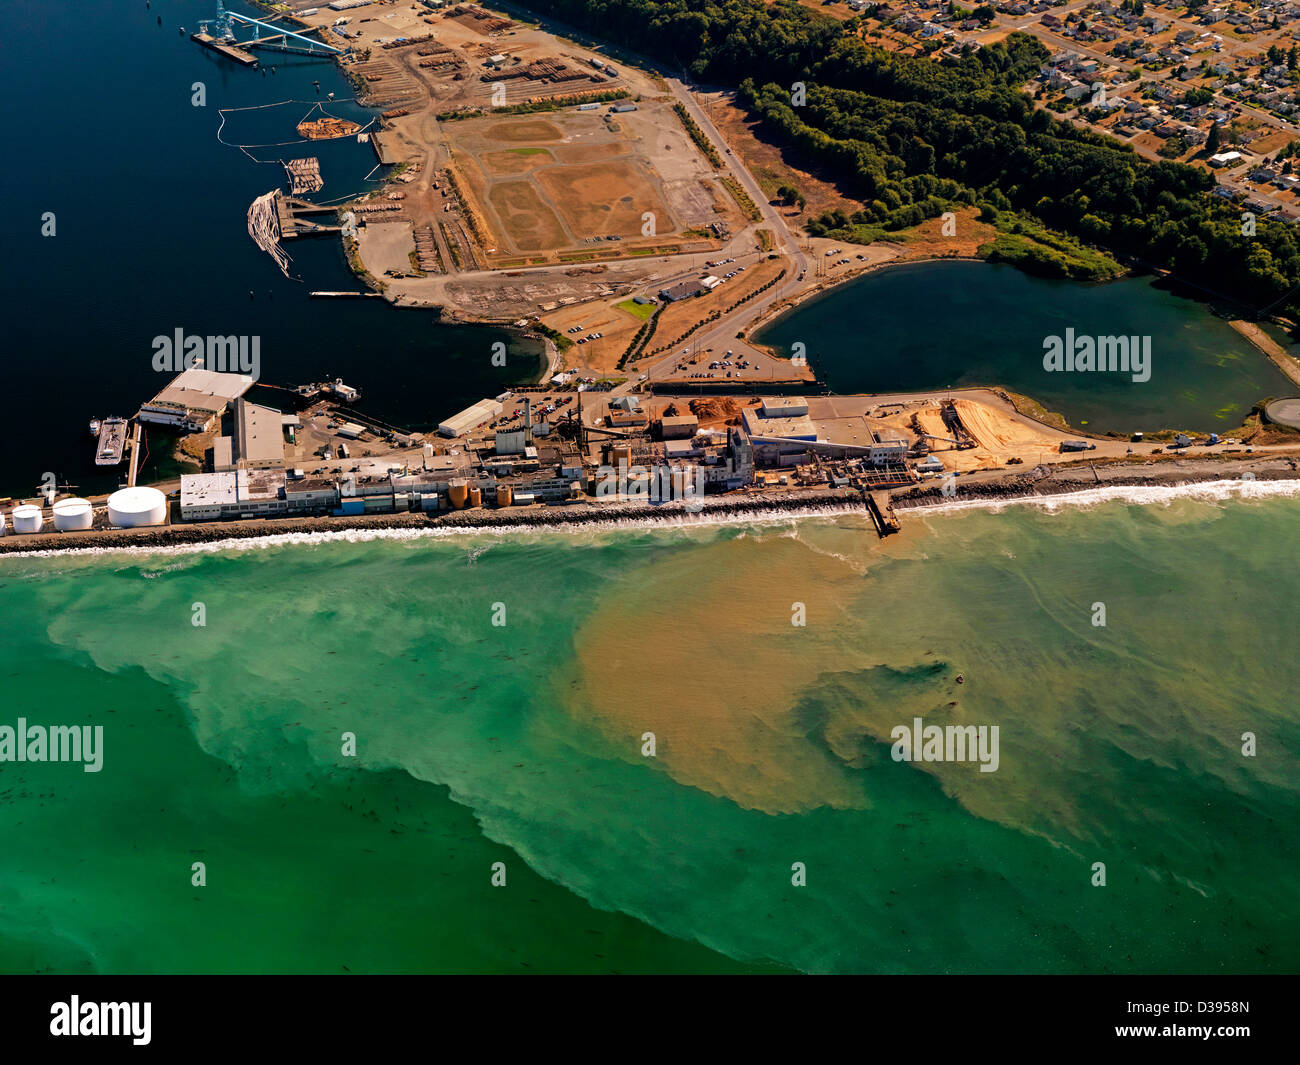 The Nippon Paper Industries USA Company paper plant at Port Angeles in Washington State an aerial photo. - Stock Image